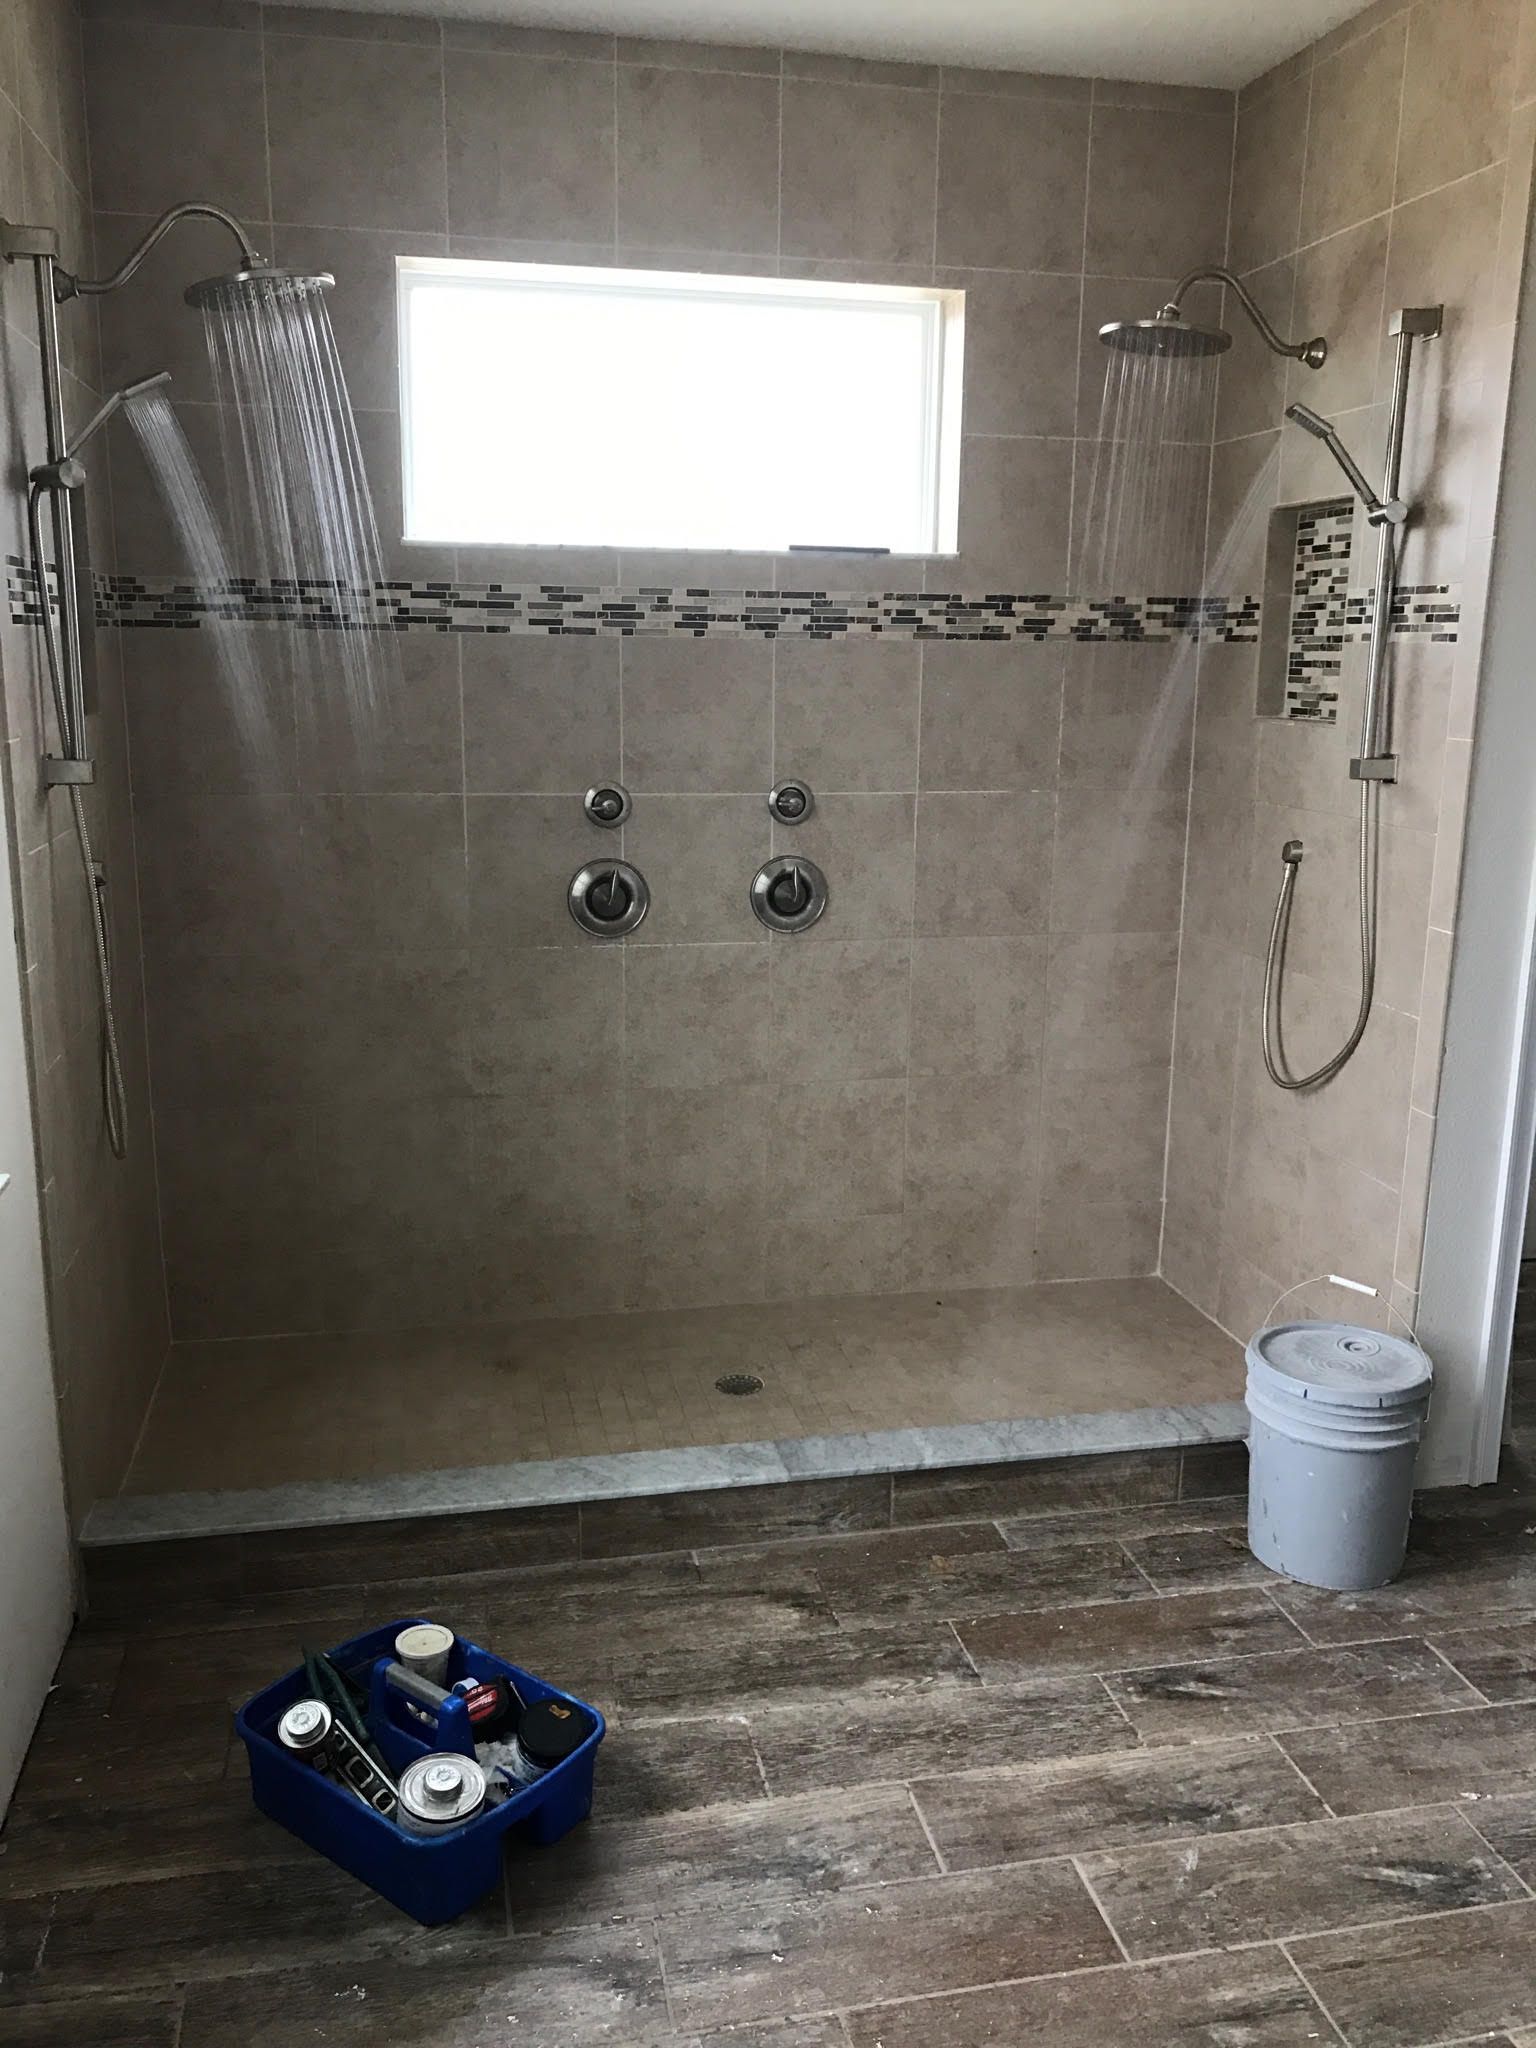 Bathroom Remodeling Project Shower A-1 Southern Plumbing